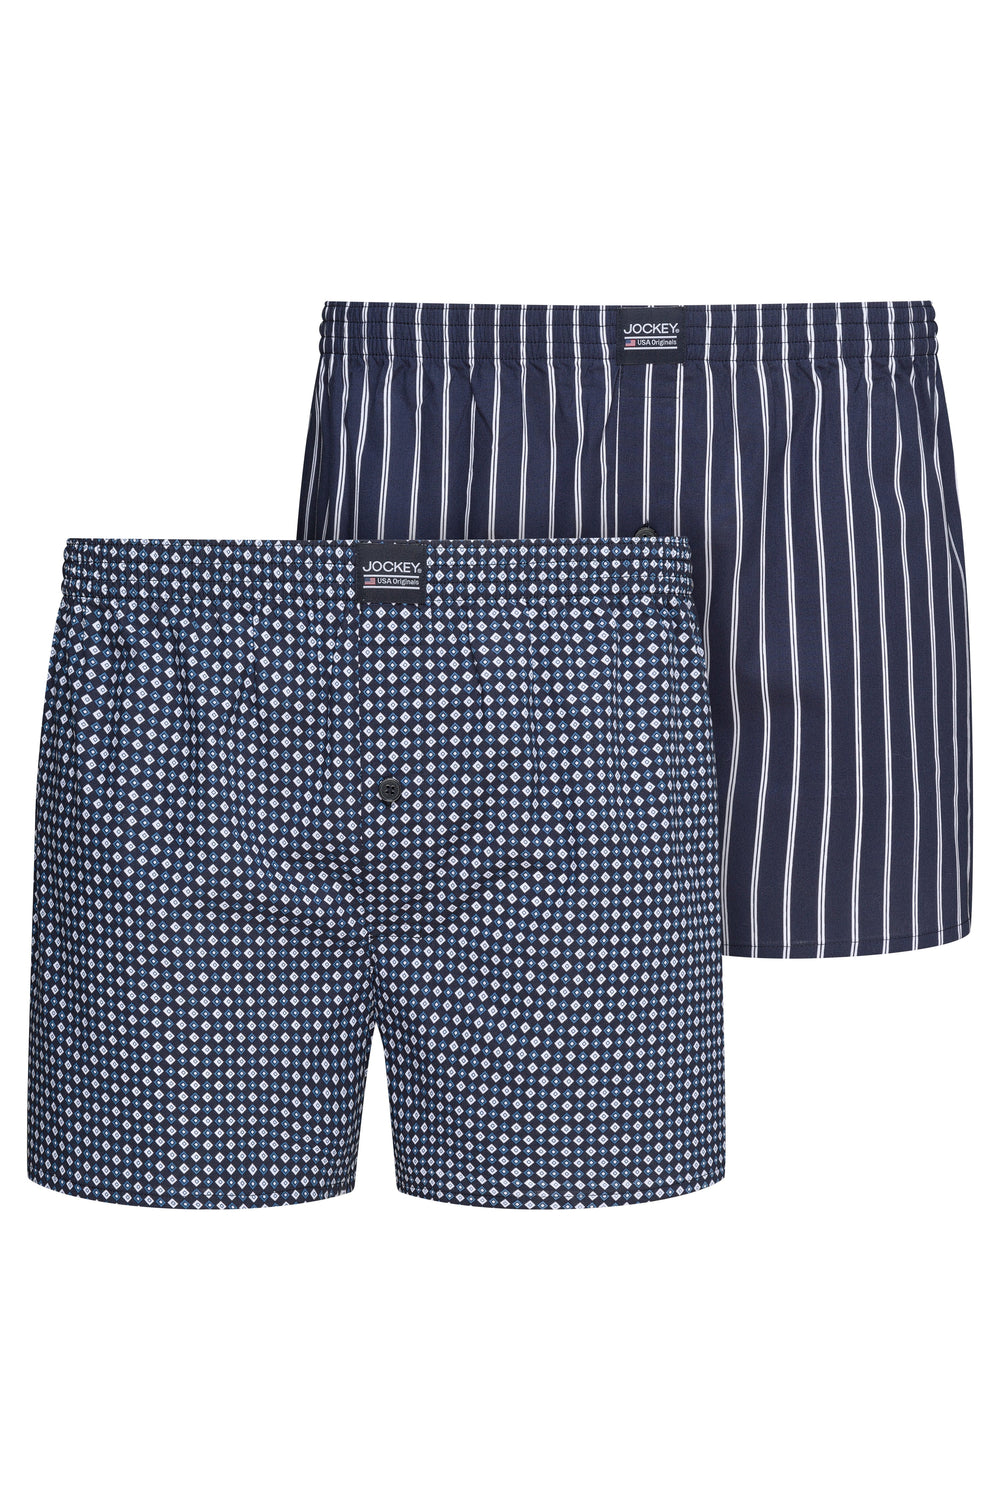 Jockey® Everyday Woven Boxer 2 Pack